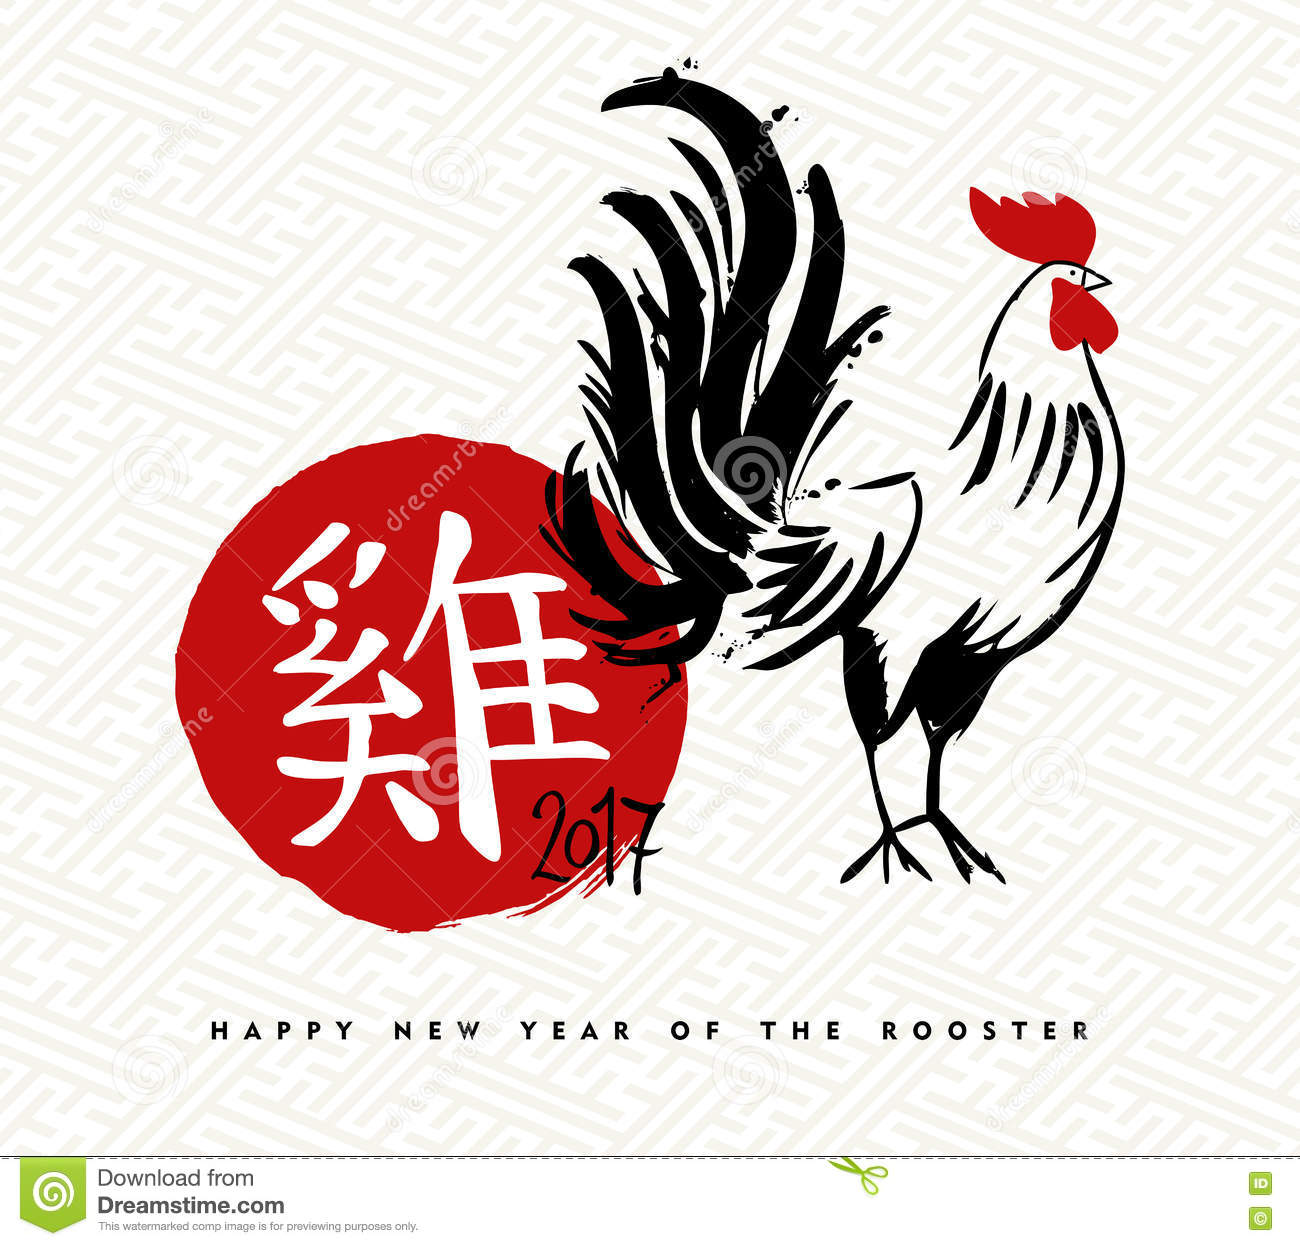 New year 2017 greeting pictures year of rooster happy chinese new year - Chinese New Year 2017 Rooster Art Card Design Stock Vector